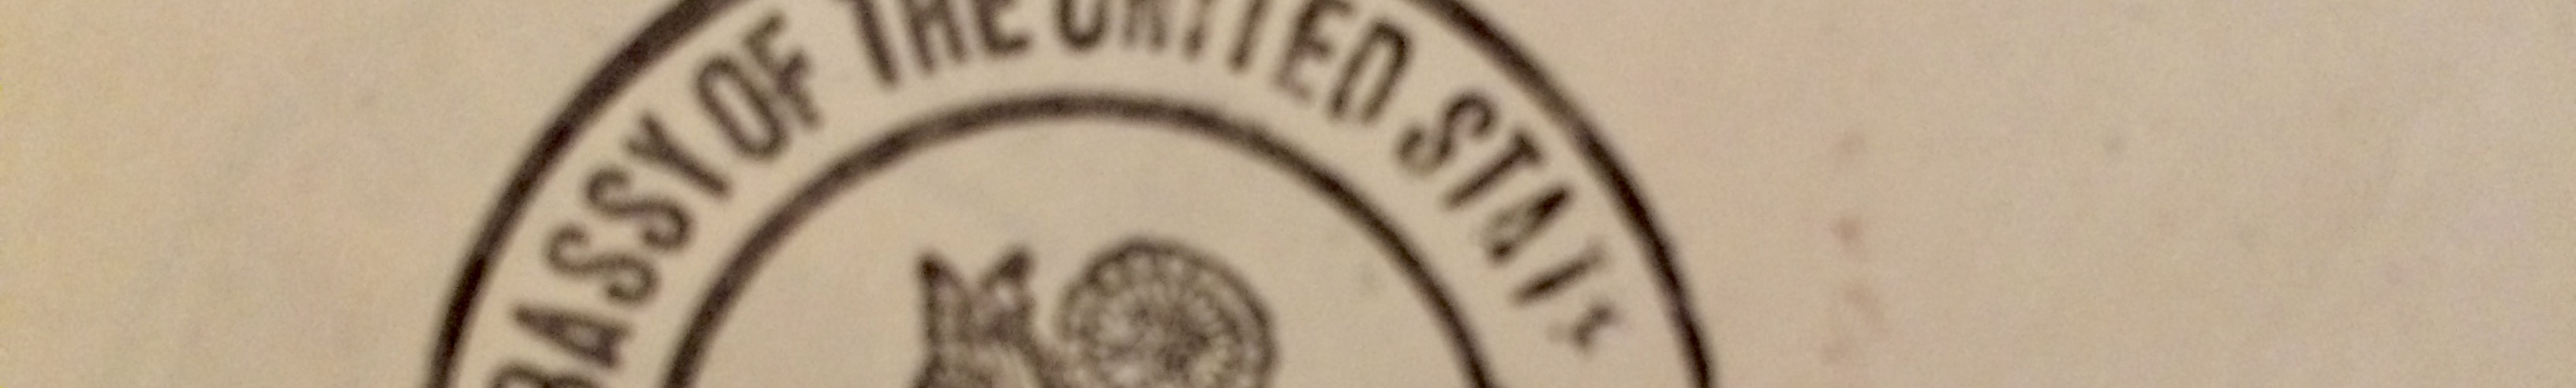 """Part of the official seal. Letters at least partially visible say """"assy of the United States"""""""